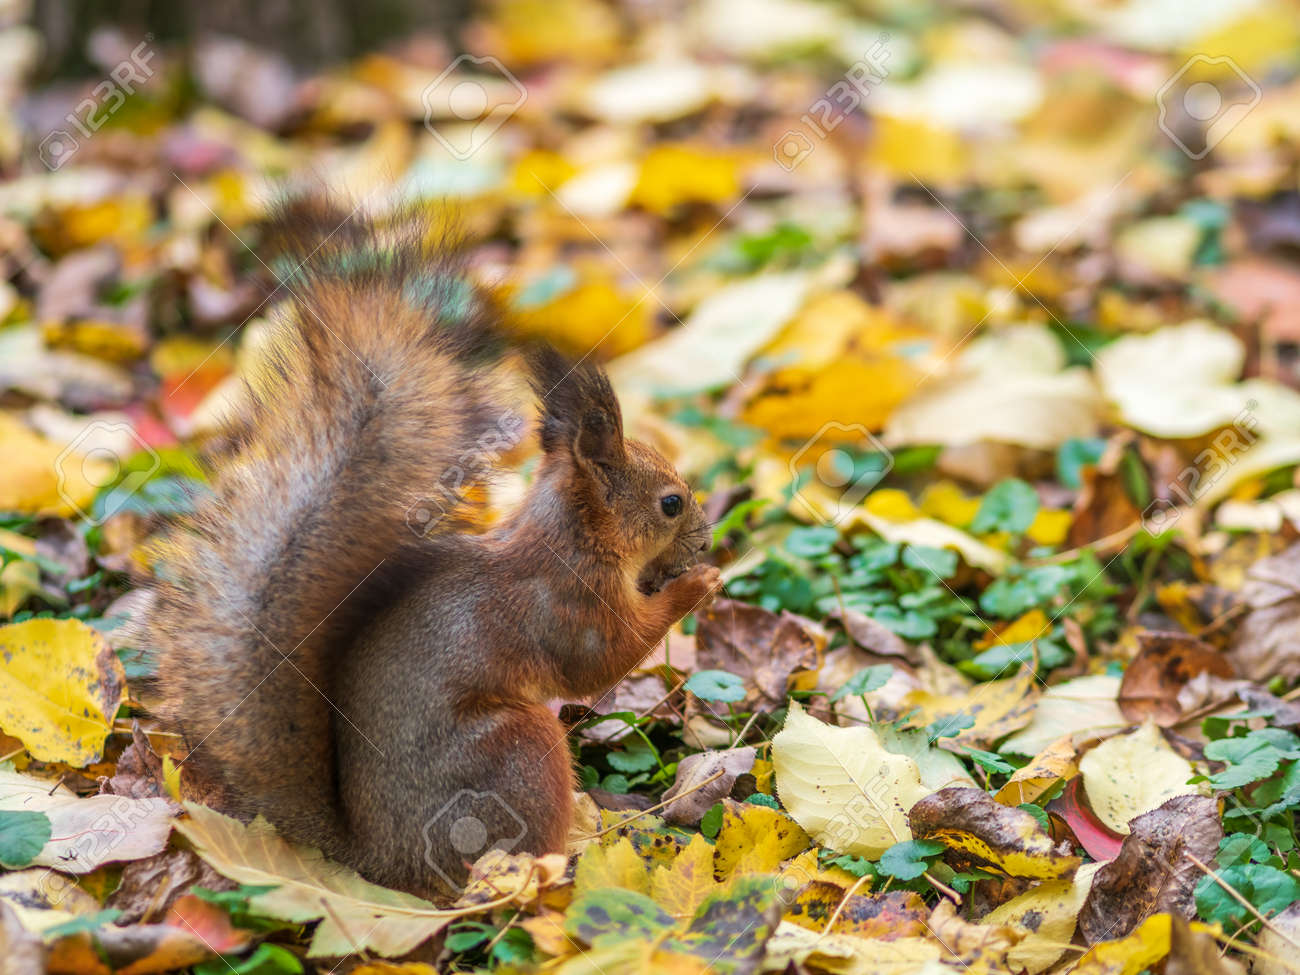 Squirrel with nut in autumn on green grass with fallen yellow leaves - 170095738